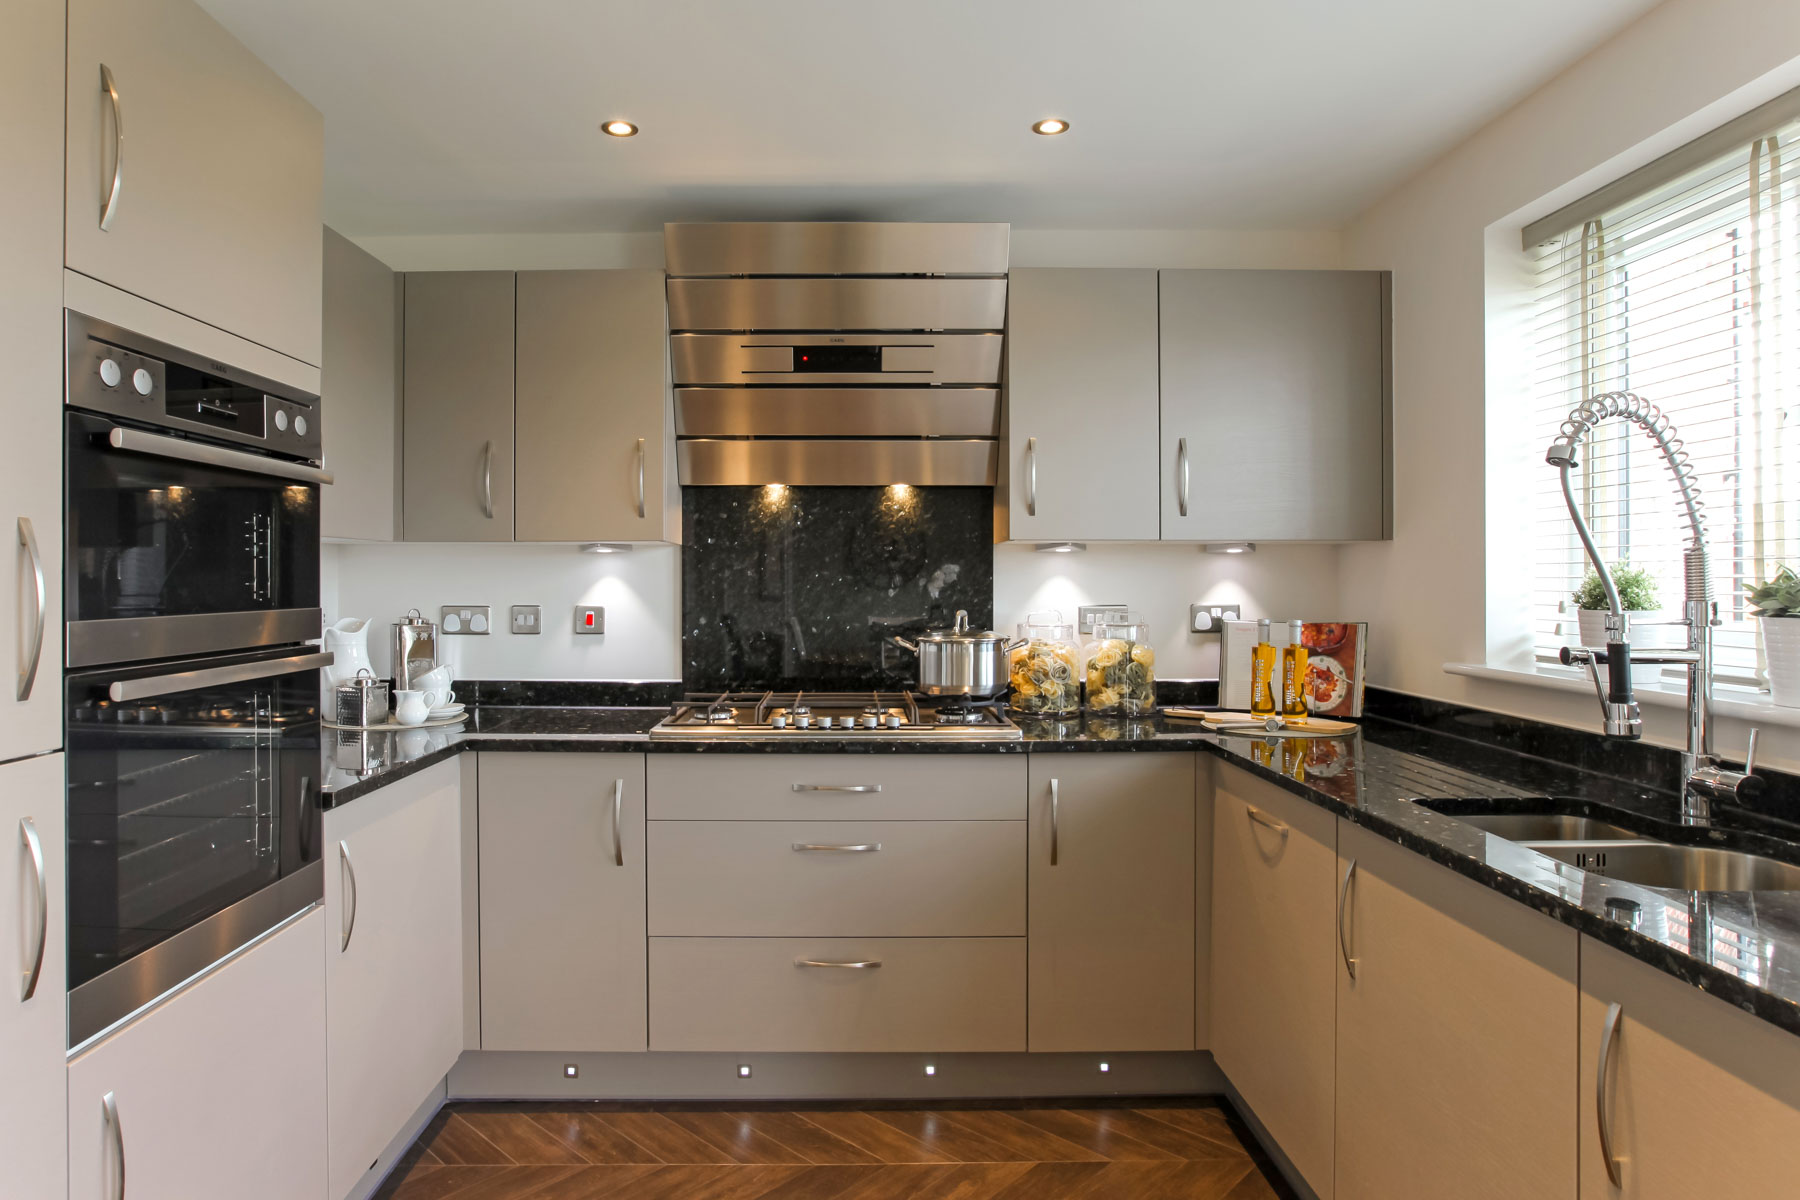 Eynsham_Kitchen